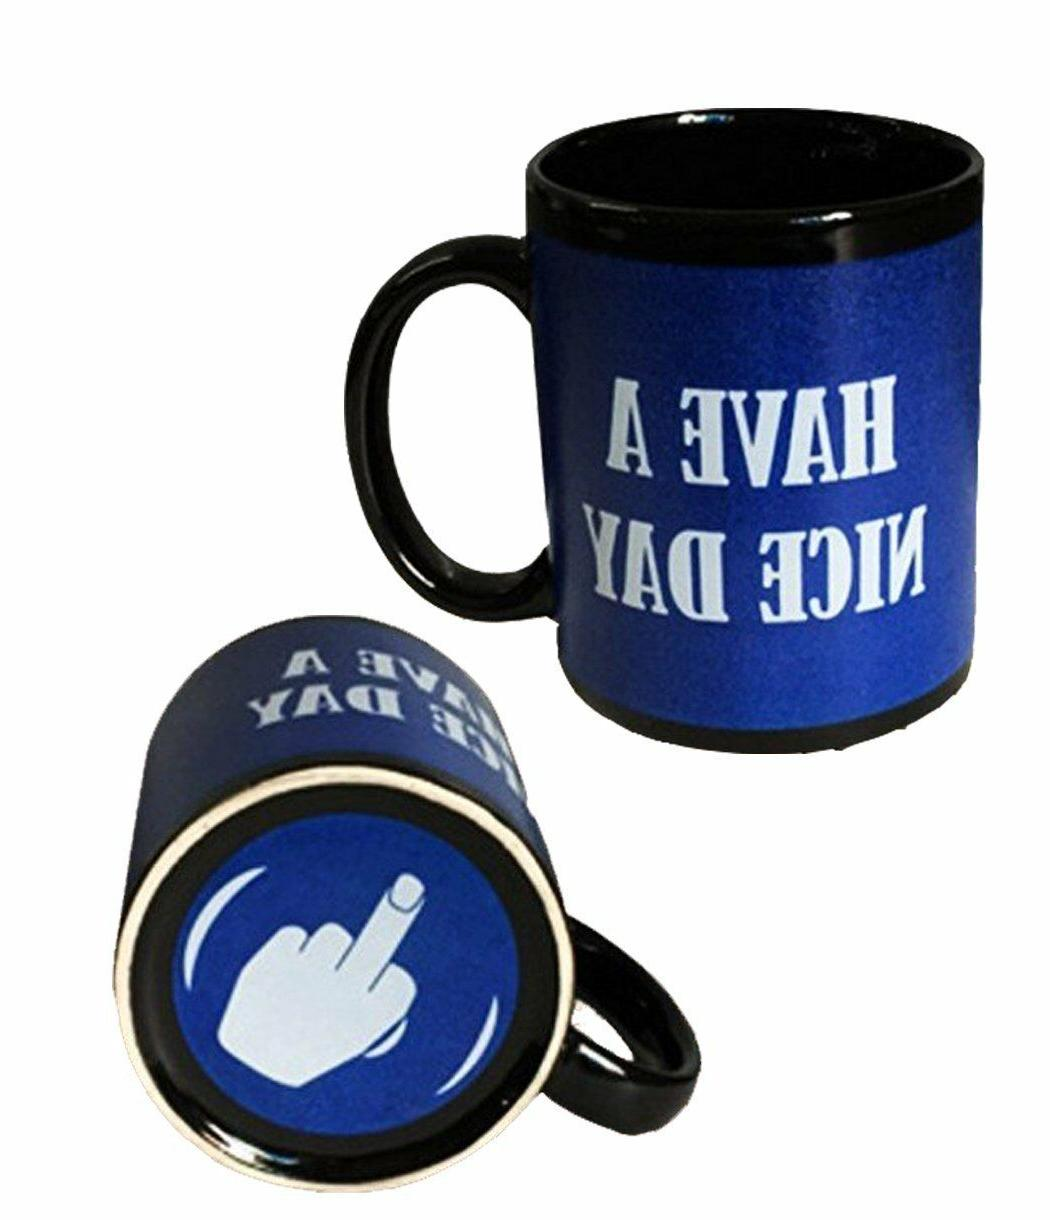 ddc6c9ce622 Have A Nice Day Coffee Mug Middle Finger